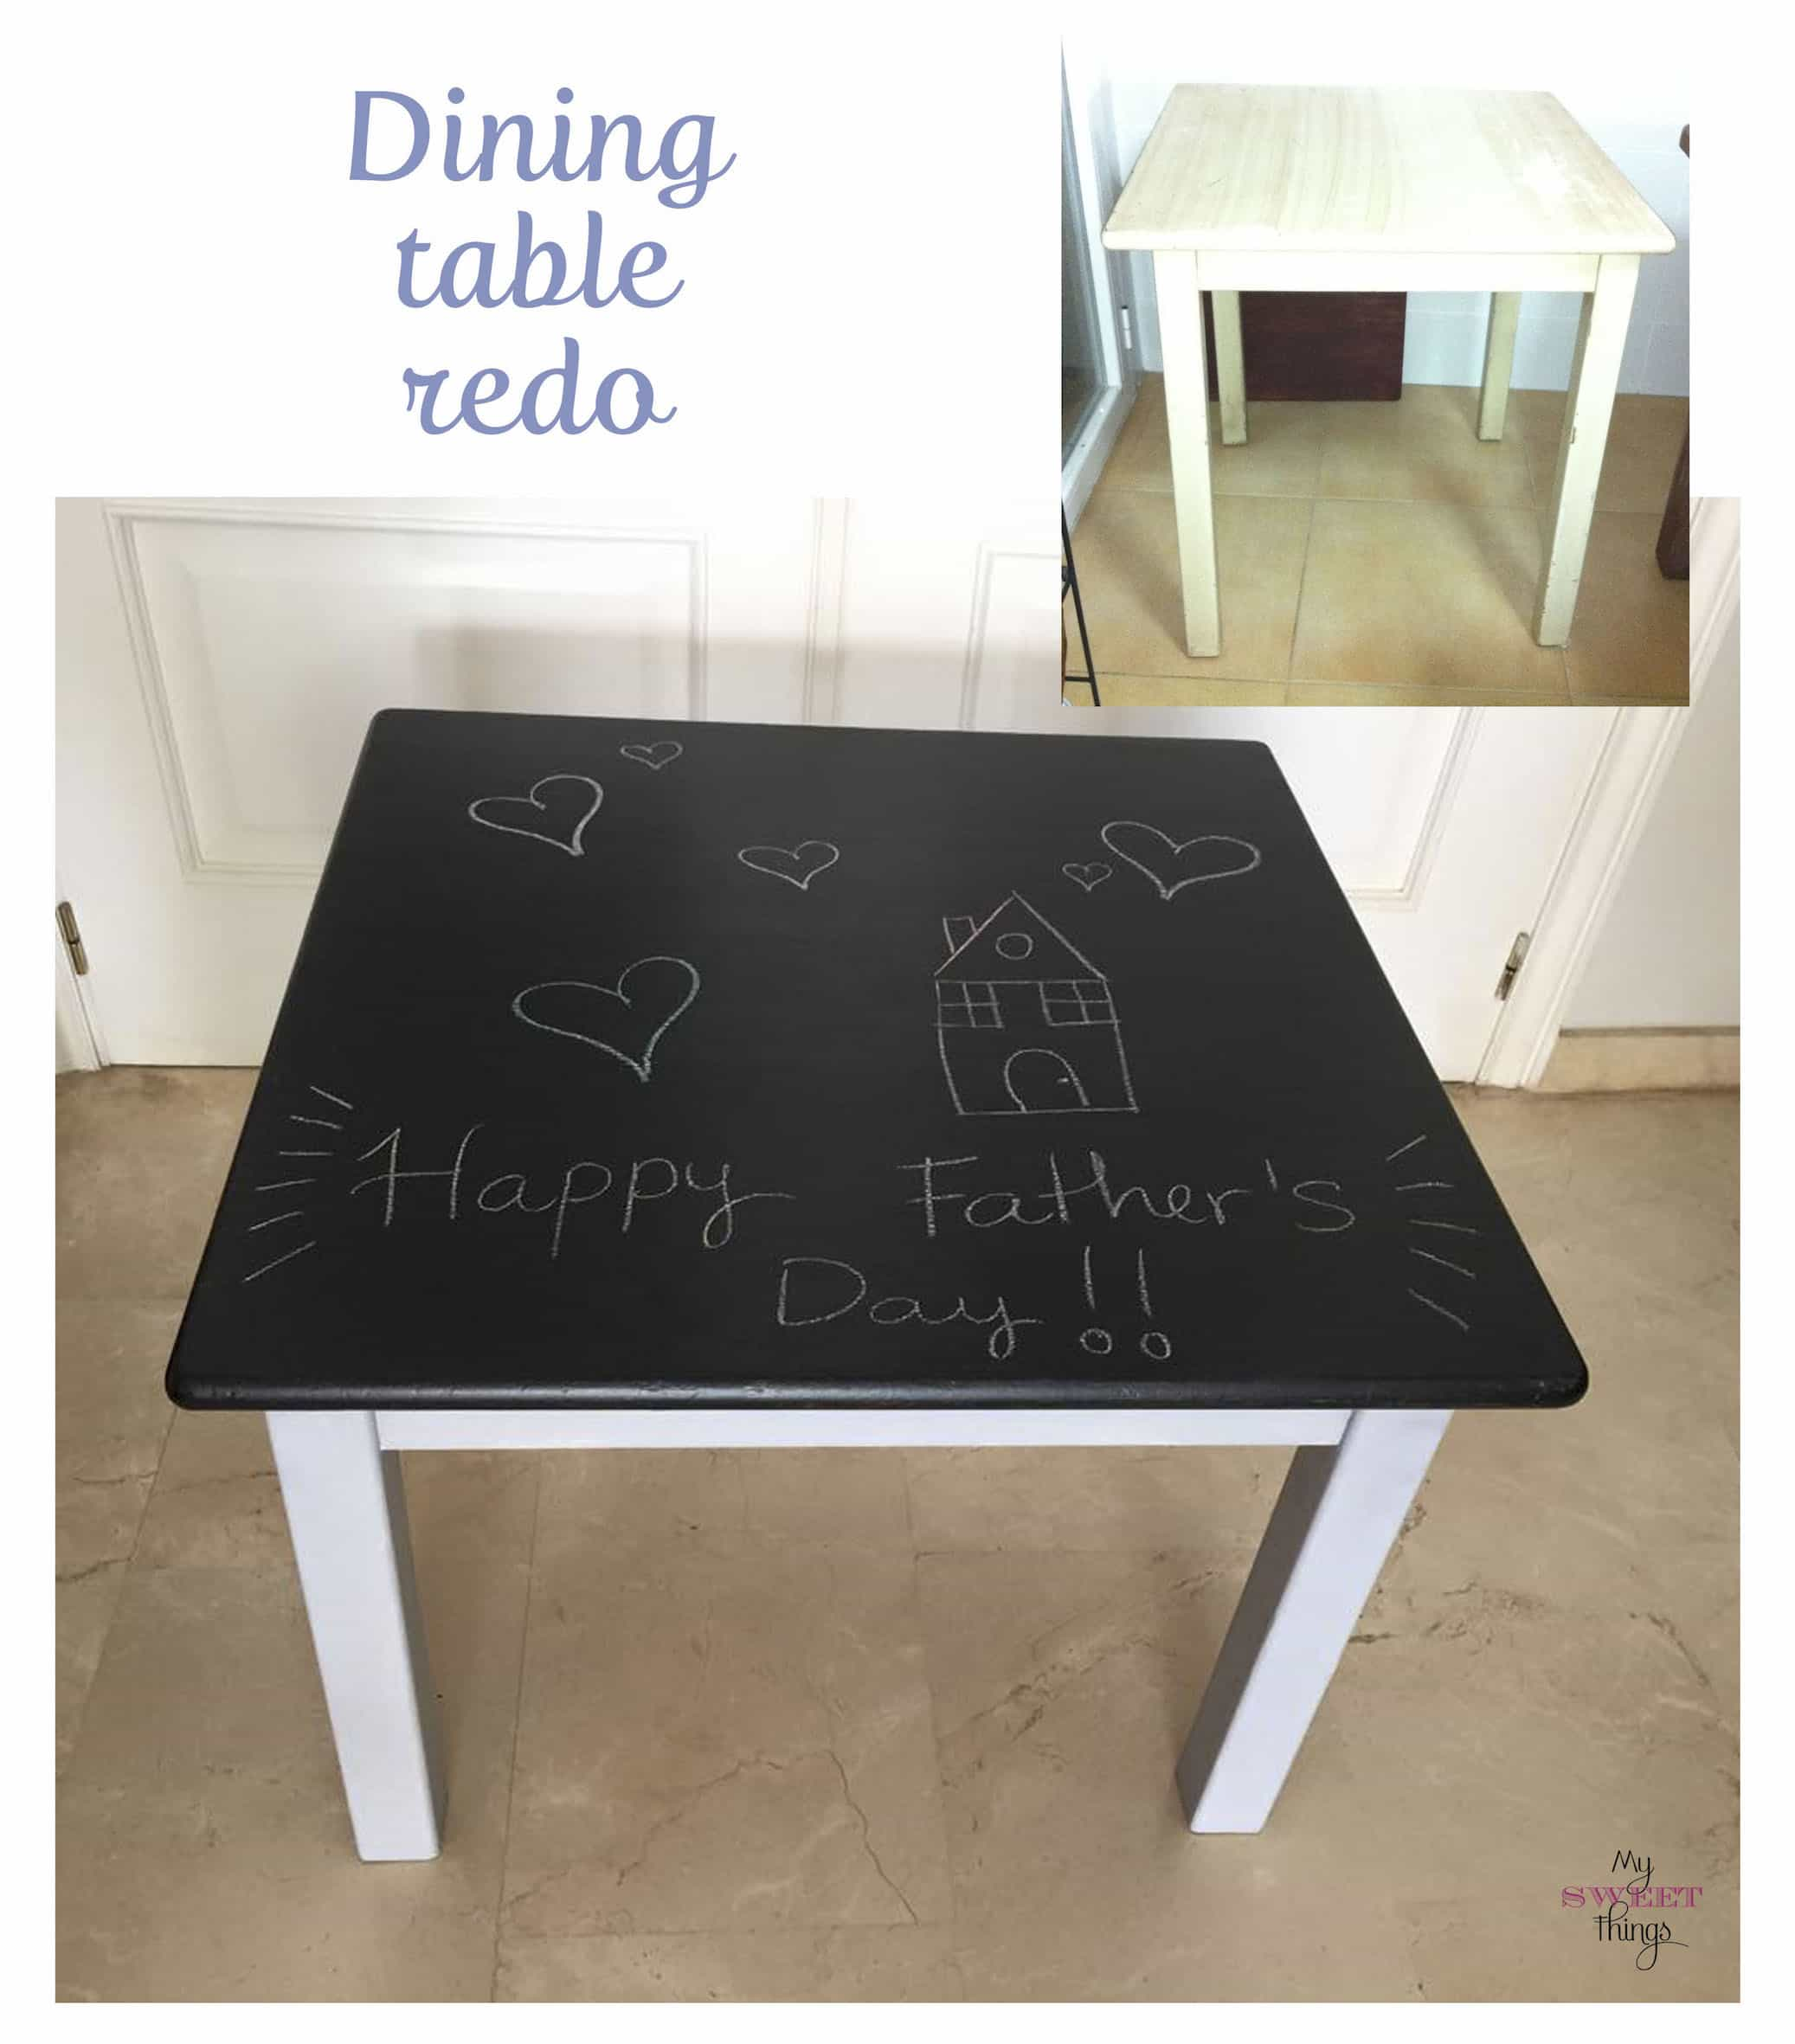 How to transform a dining table into a chalkboard table | Via www.sweethings.net